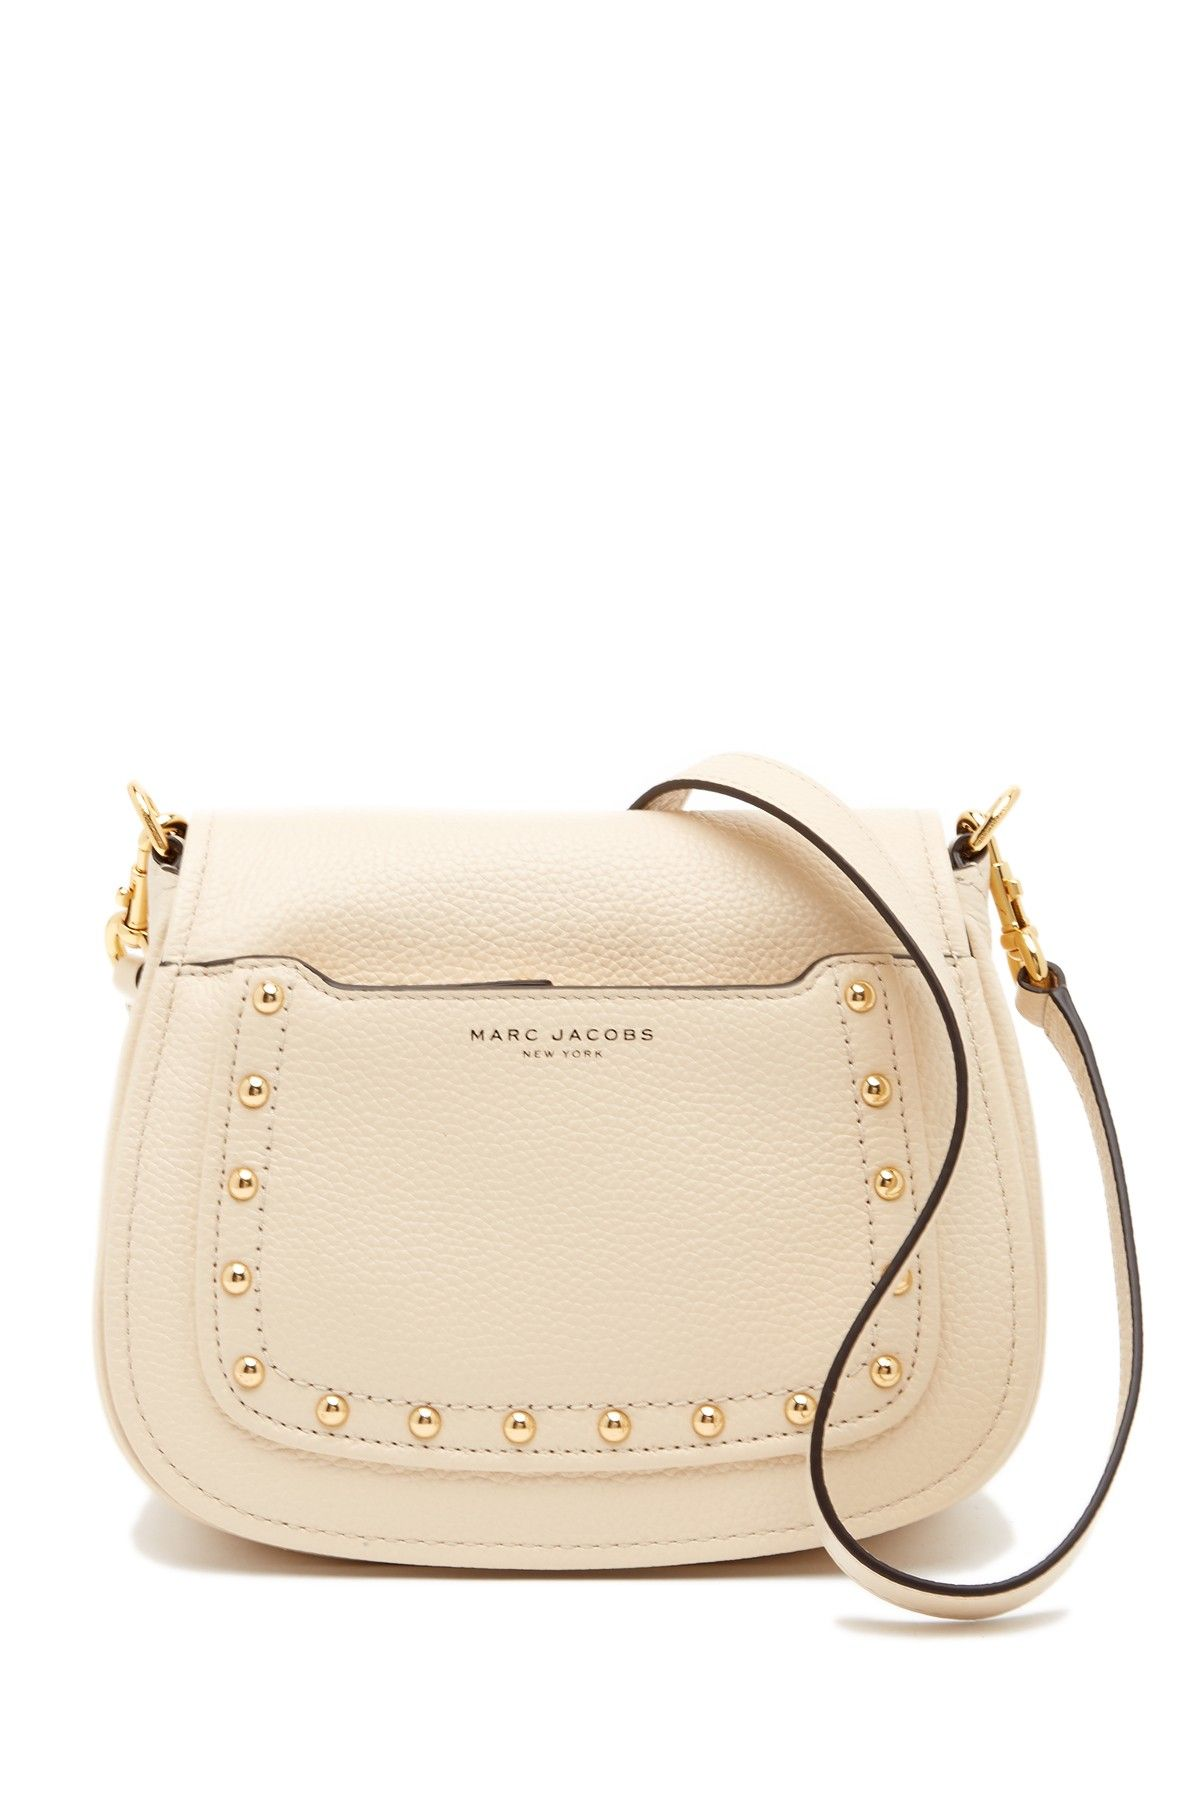 4c7923abbea9 Image of Marc Jacobs Empire City Stud Mini Messenger Leather Crossbody Bag